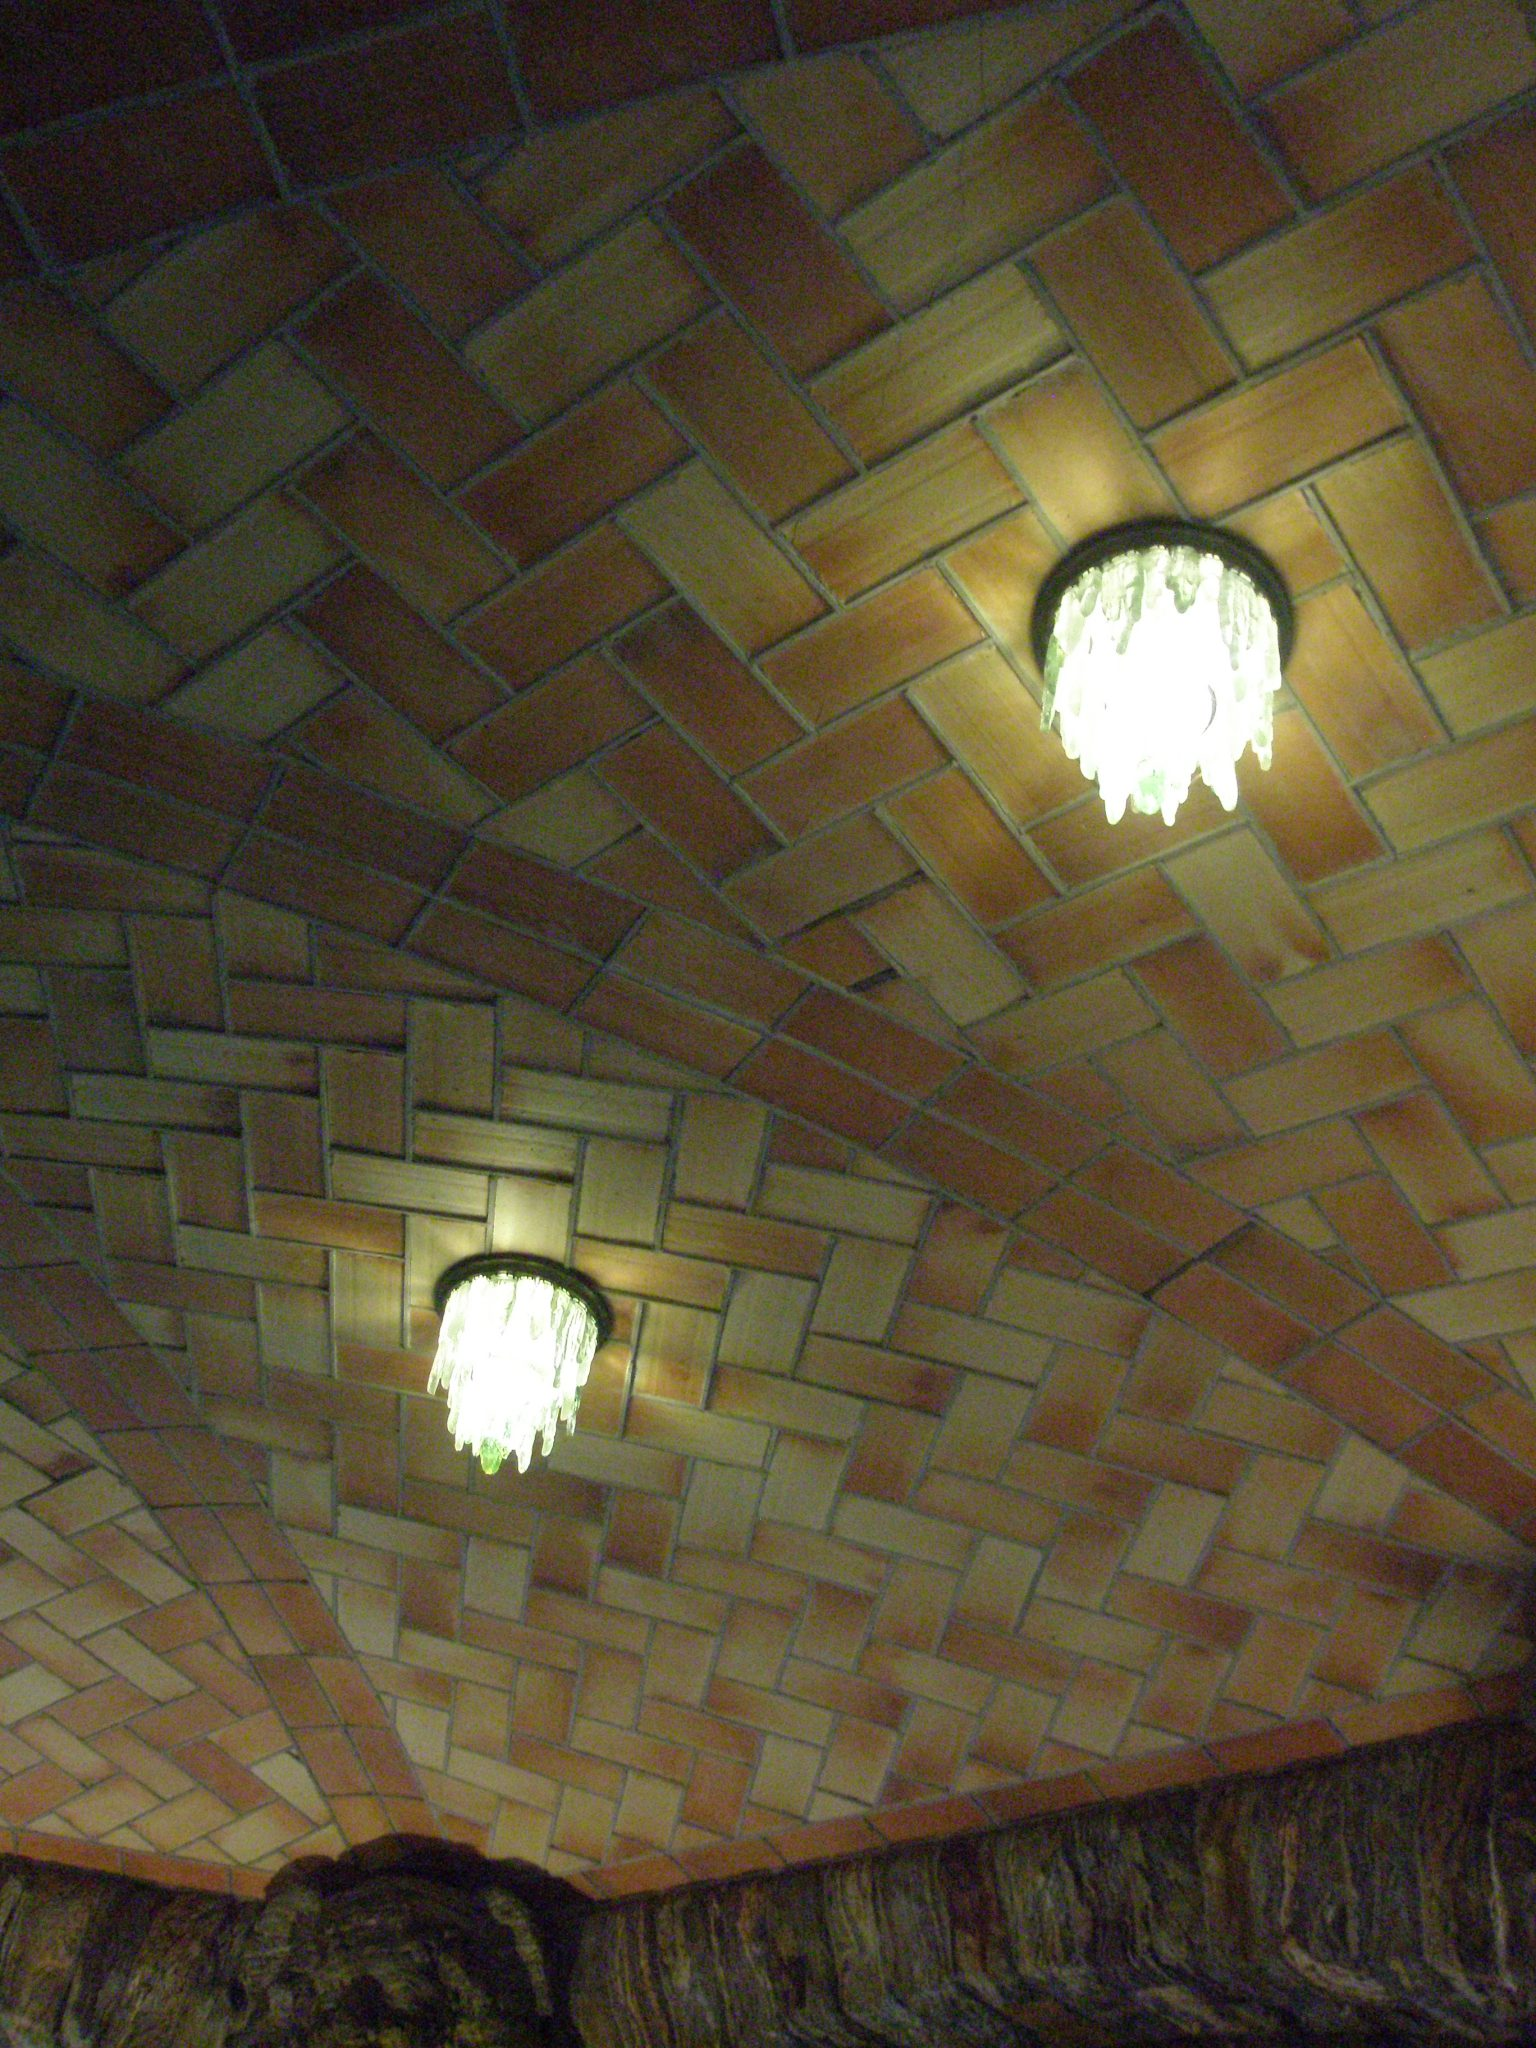 Icicle-form Lights of frosted glass, designed by William Bosworth and made my Tiffany. Guastavino's arched, structural-tile ceiling may look familiar to you: he also did the ceilings in the concourses of Grand Central Station.